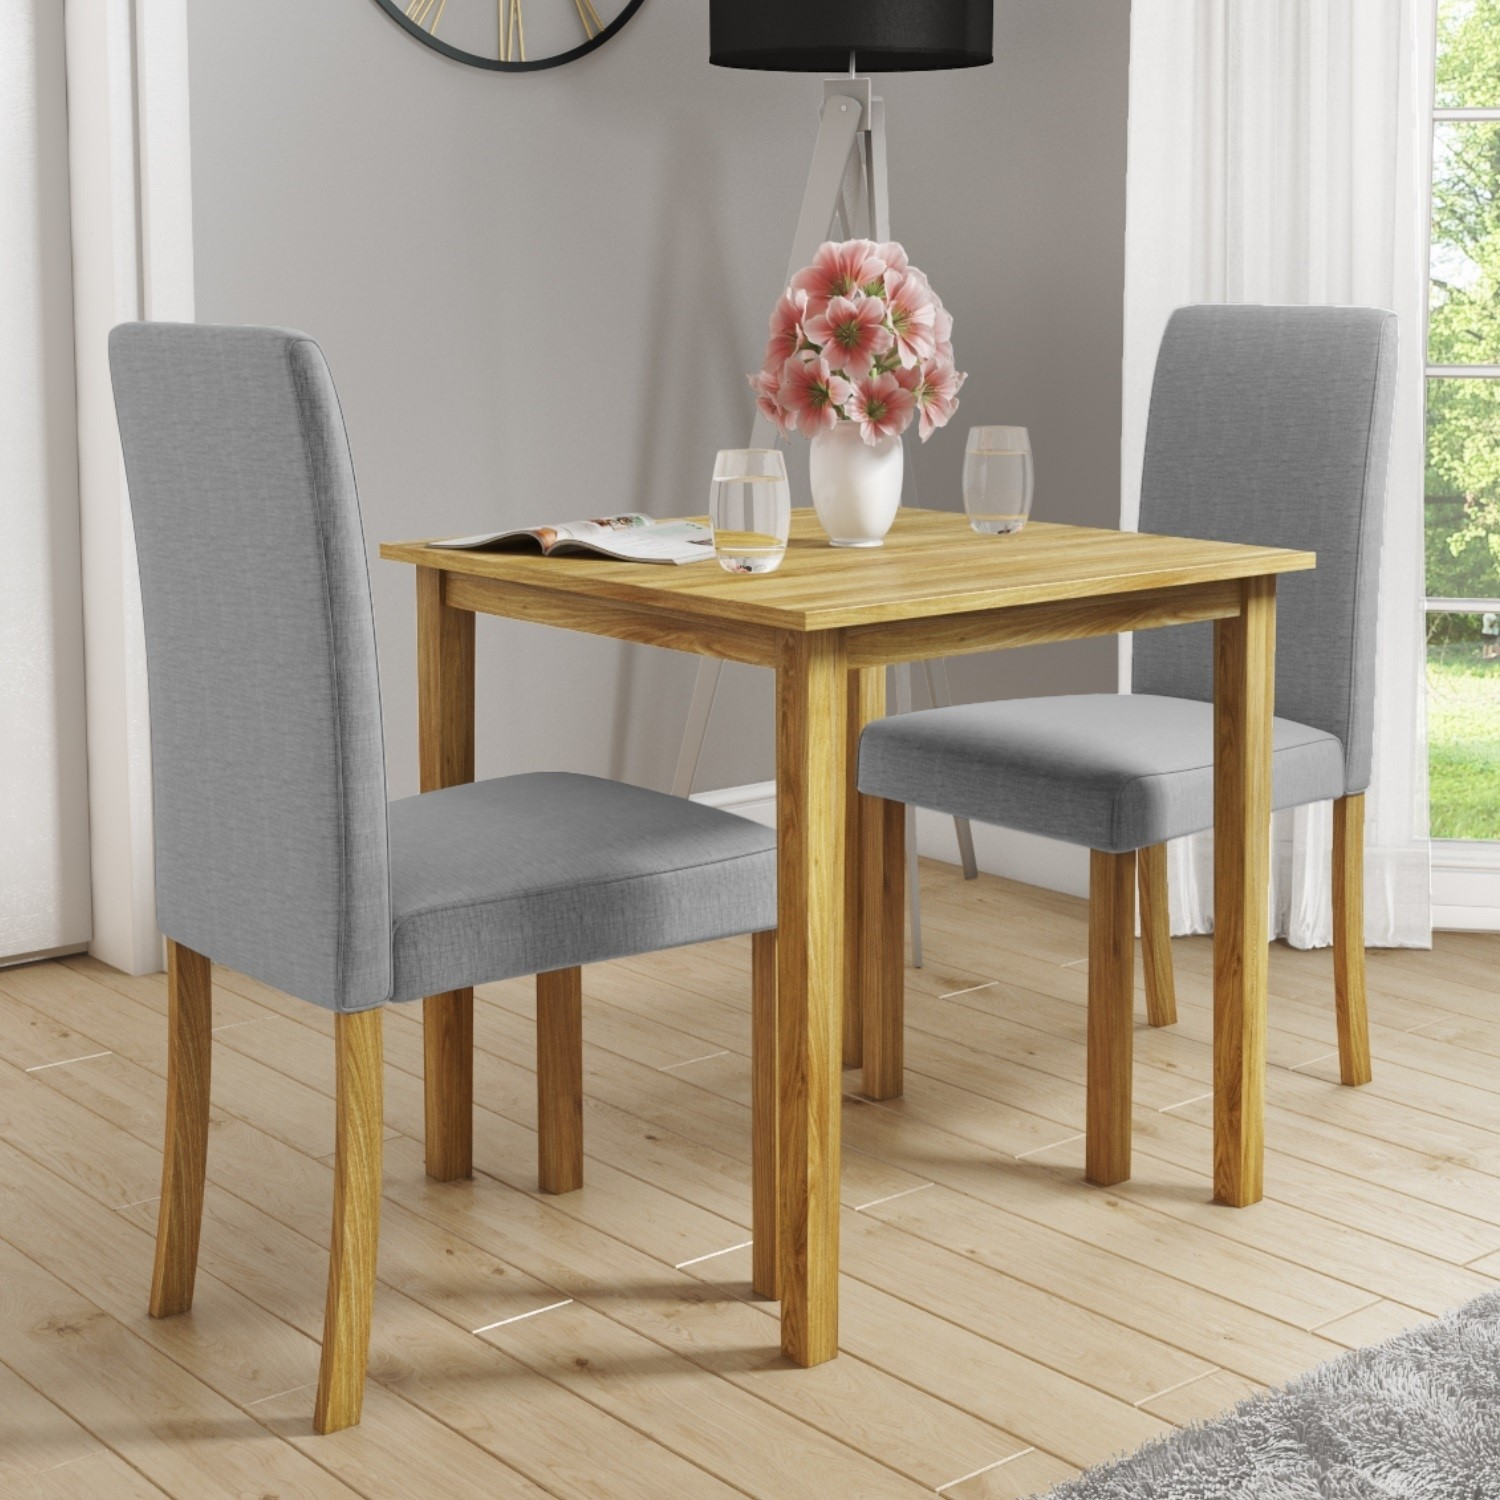 Super Details About New Haven Small Kitchen Dining Set With 2 Grey Upholstered Chairs Andrewgaddart Wooden Chair Designs For Living Room Andrewgaddartcom